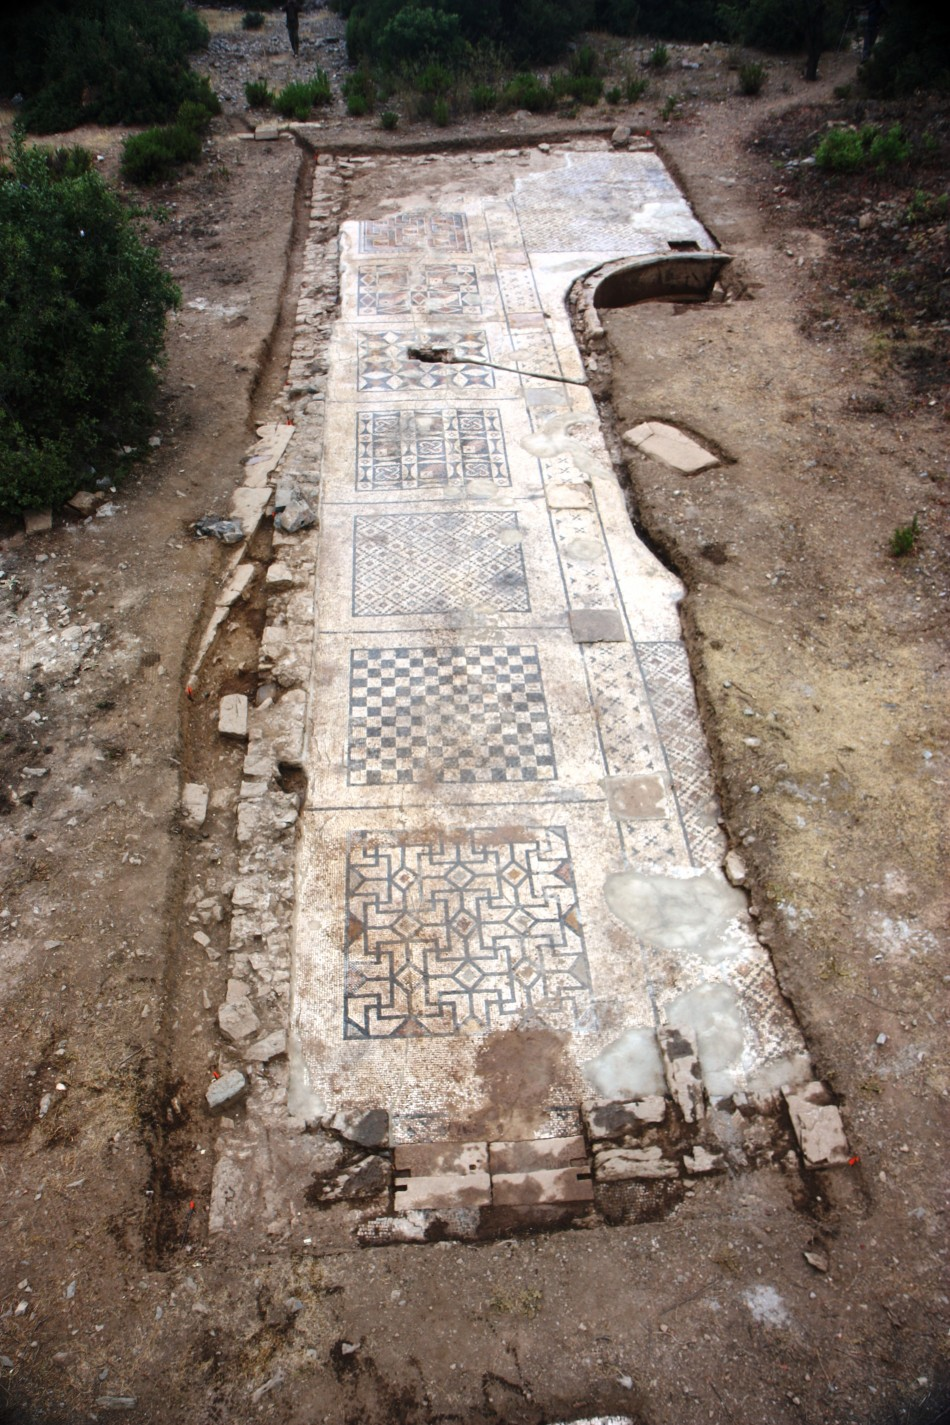 An overhead perspective of the roughly 40 percent of the mosaic uncovered so far. Researchers expect its total area to be about 1,600 square feet when fully unearthed next summer. (Photo: University of Nebraska-Lincoln)